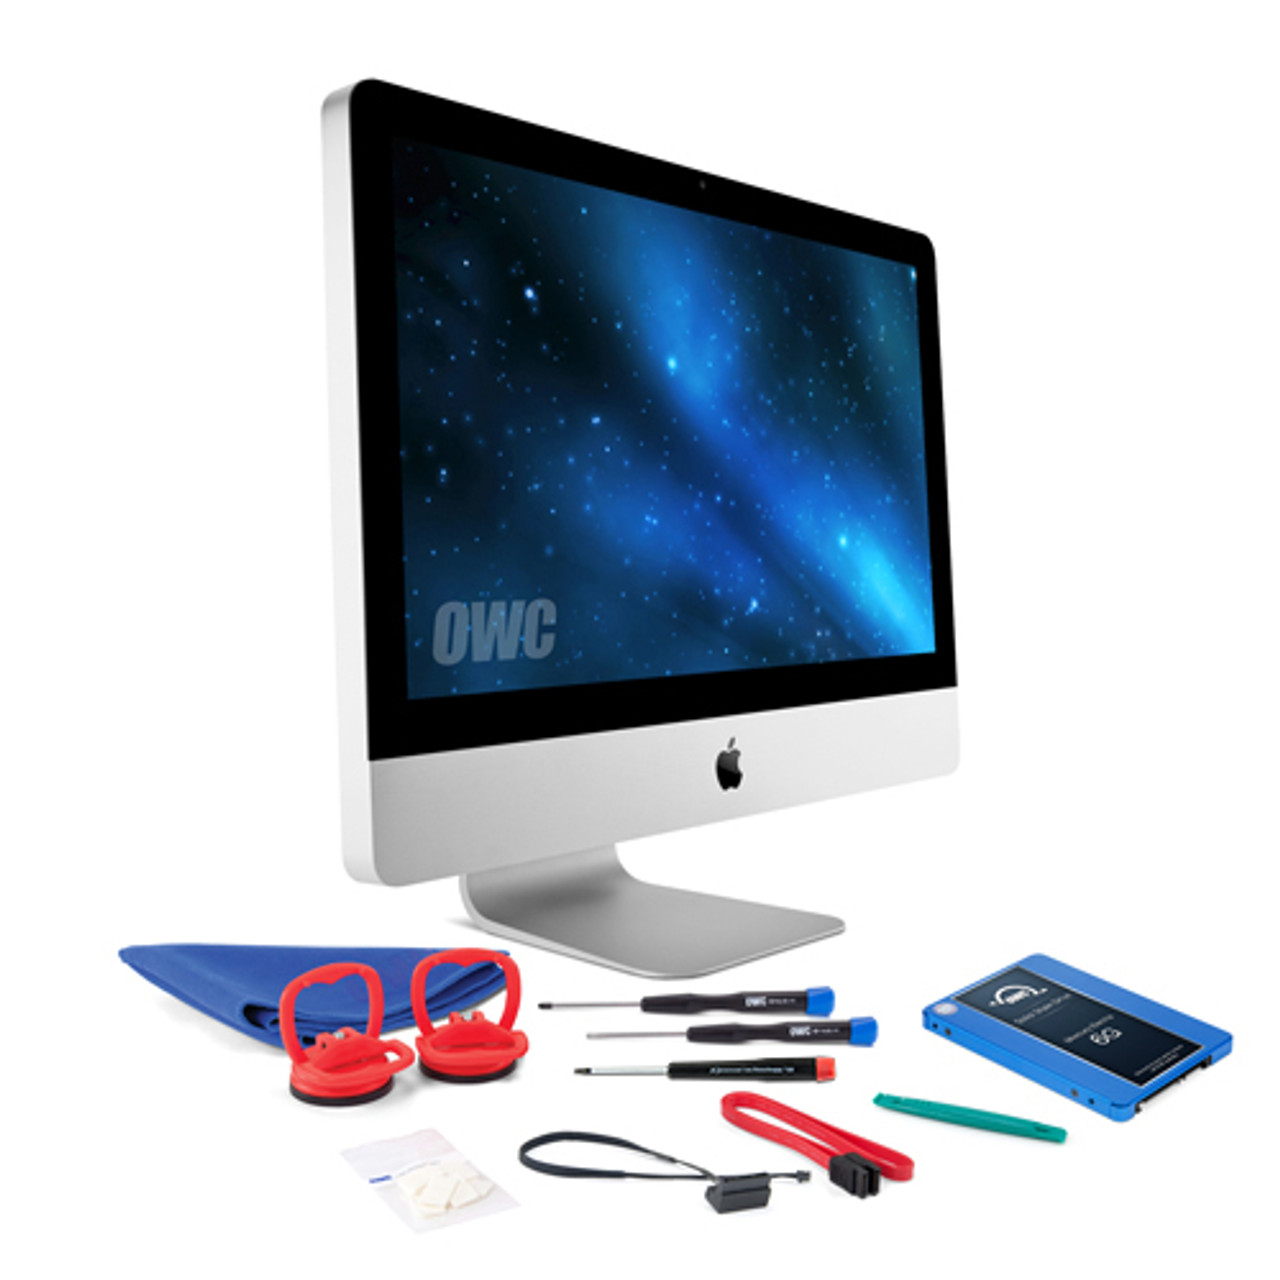 OWCK21IM11SE250_SSD Bay Add-In Kit for 2011 21.5-inch iMacs